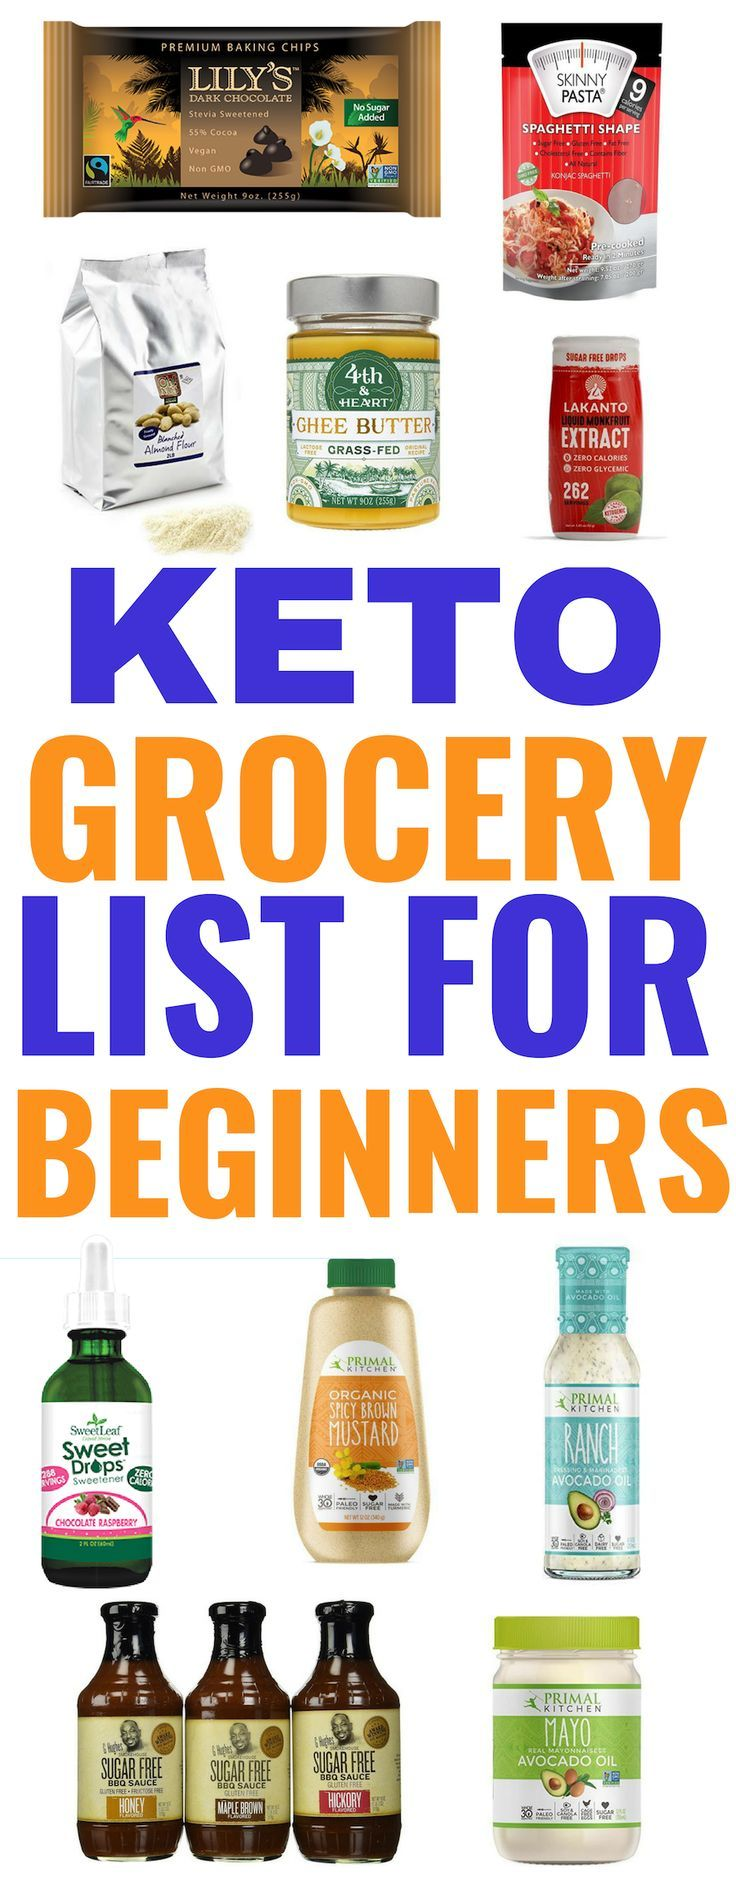 Keto Grocery List For Beginners - Simple Grocery List Guide | Keto Diet Suplement 1